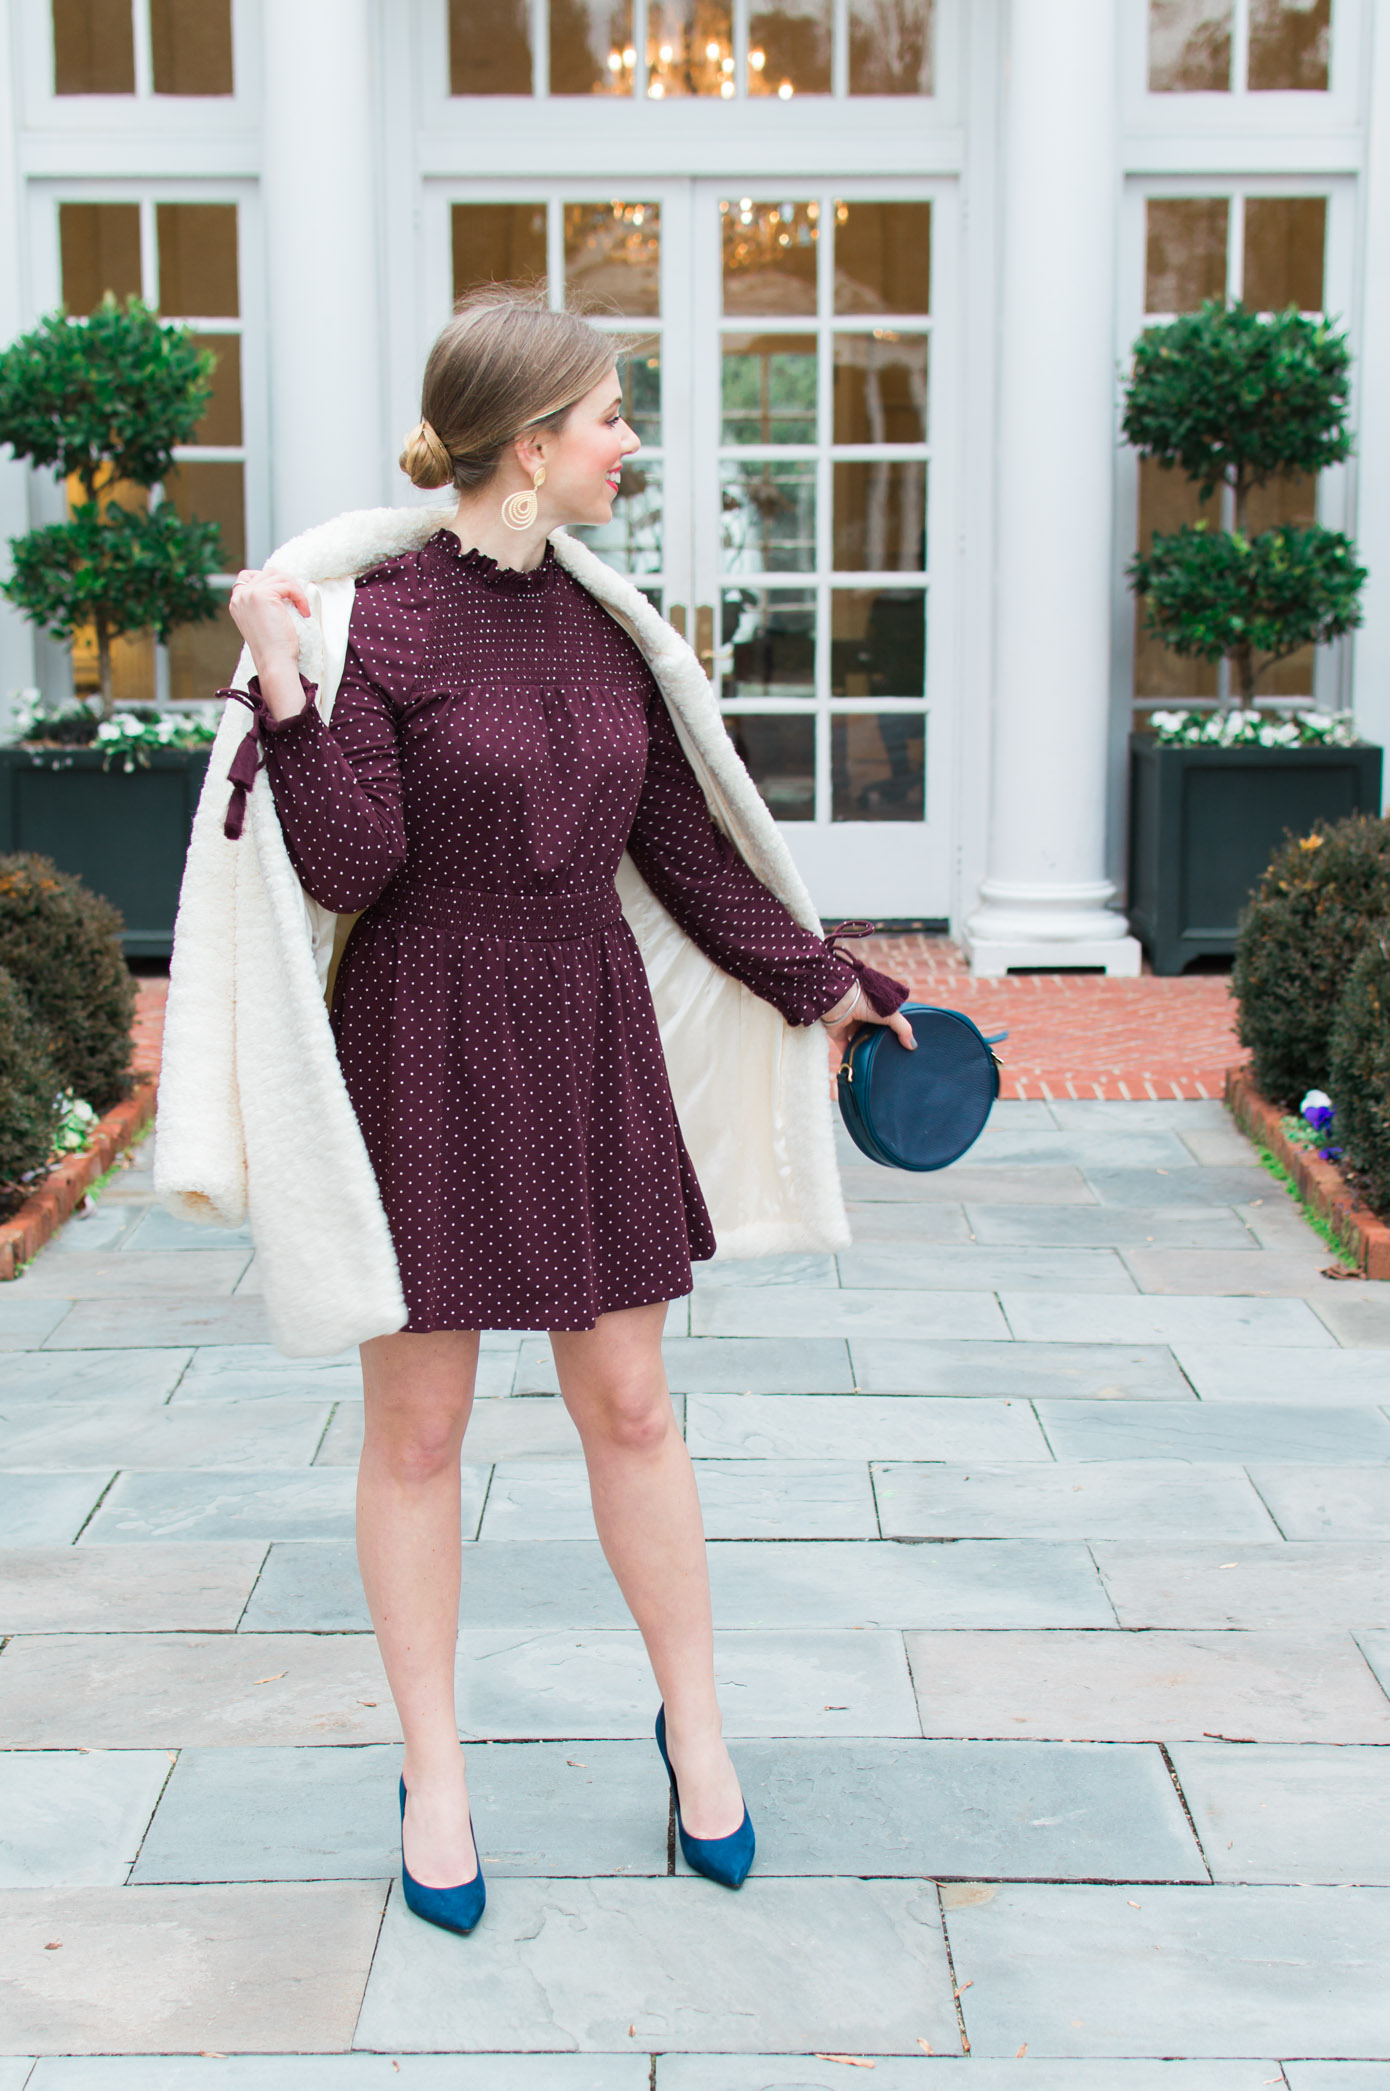 Valentine's Day Dresses | Chic Winter Date Night Look | Louella Reese Life & Style Blog